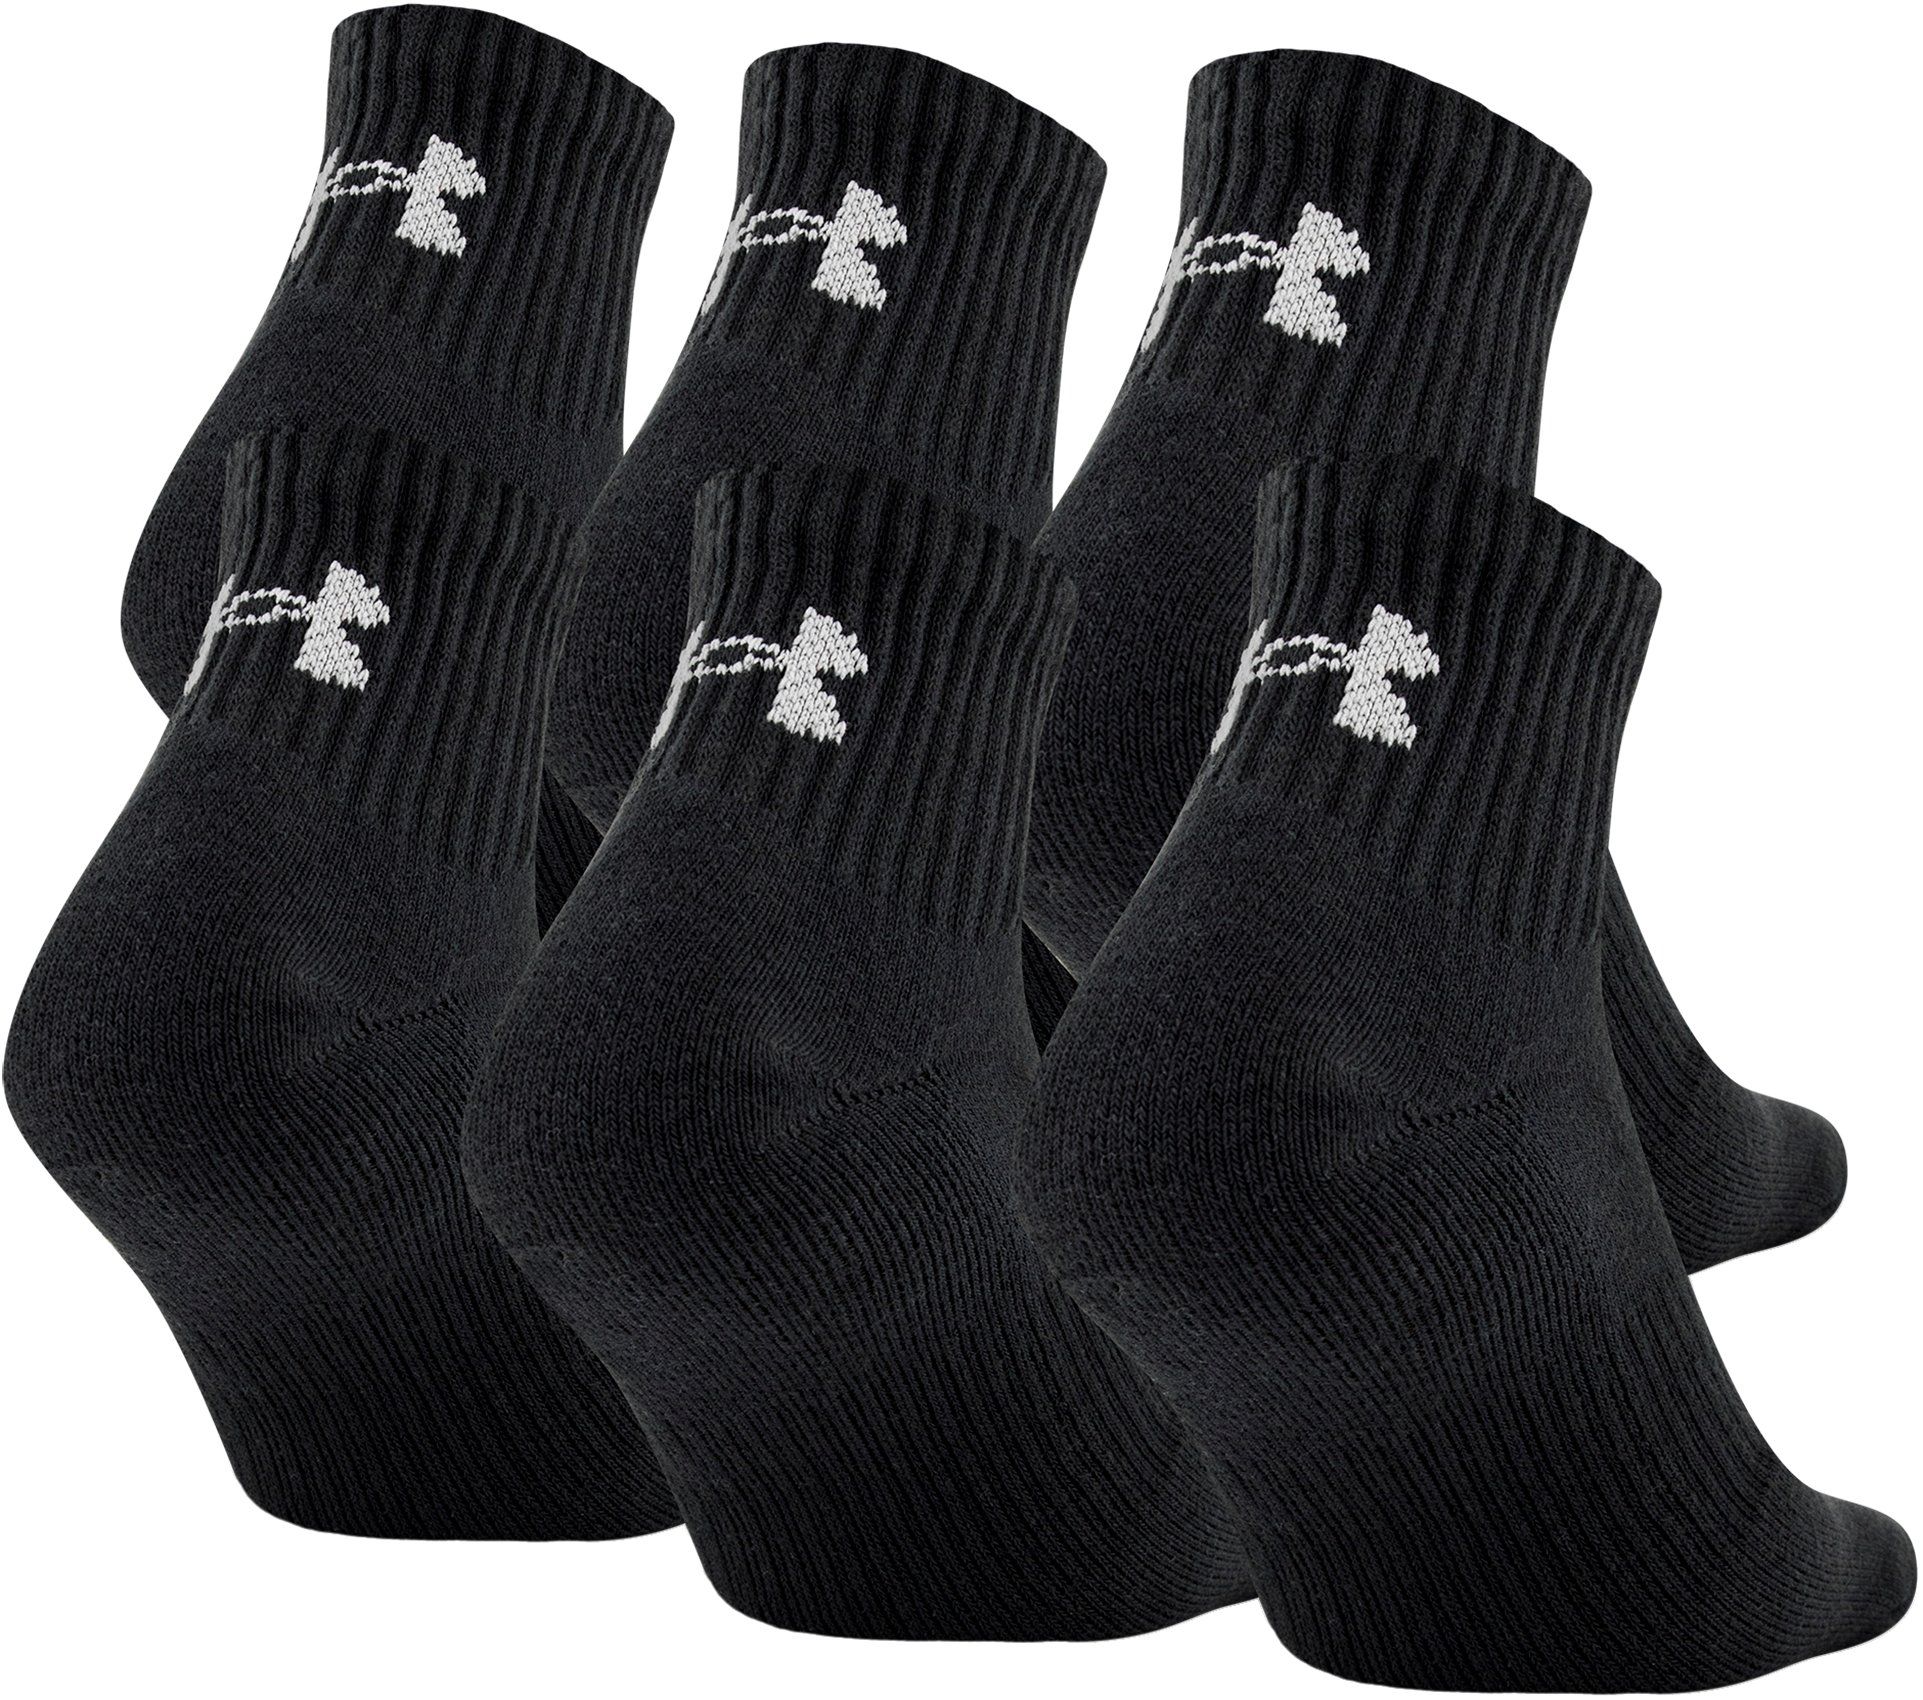 UA Charged Cotton® 2.0 Quarter Length Socks – 6-Pack, Black